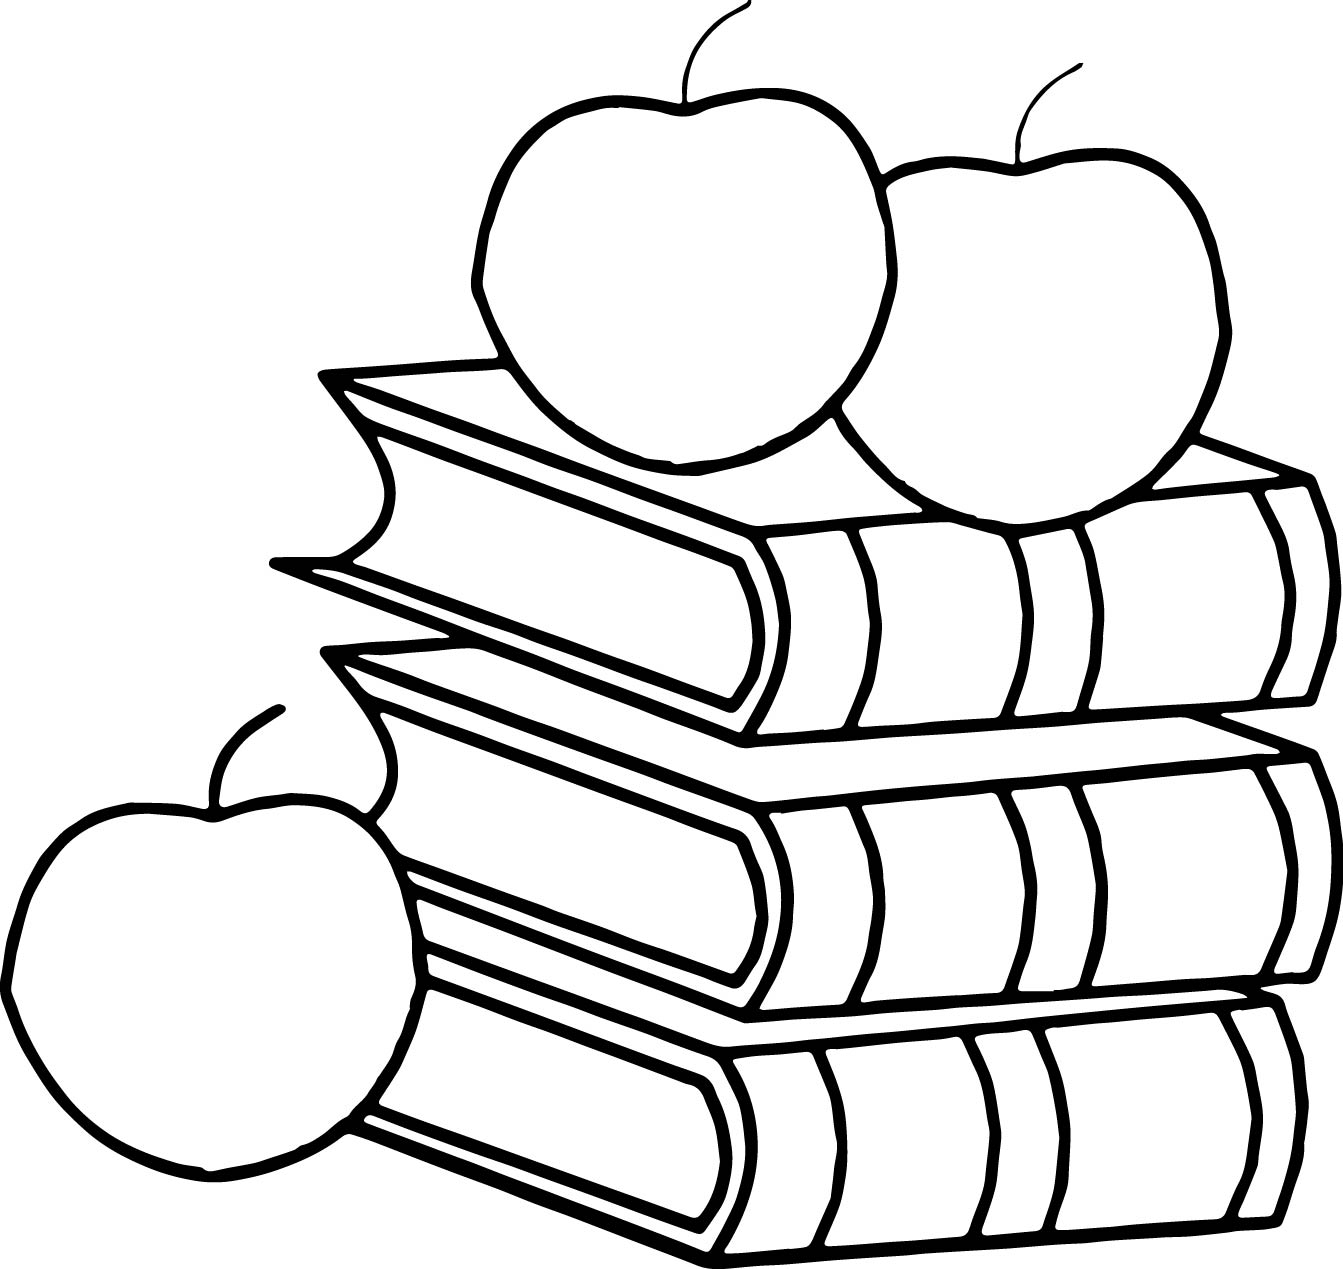 3rd grade coloring sheets 3rd grade coloring pages free download on clipartmag sheets 3rd grade coloring